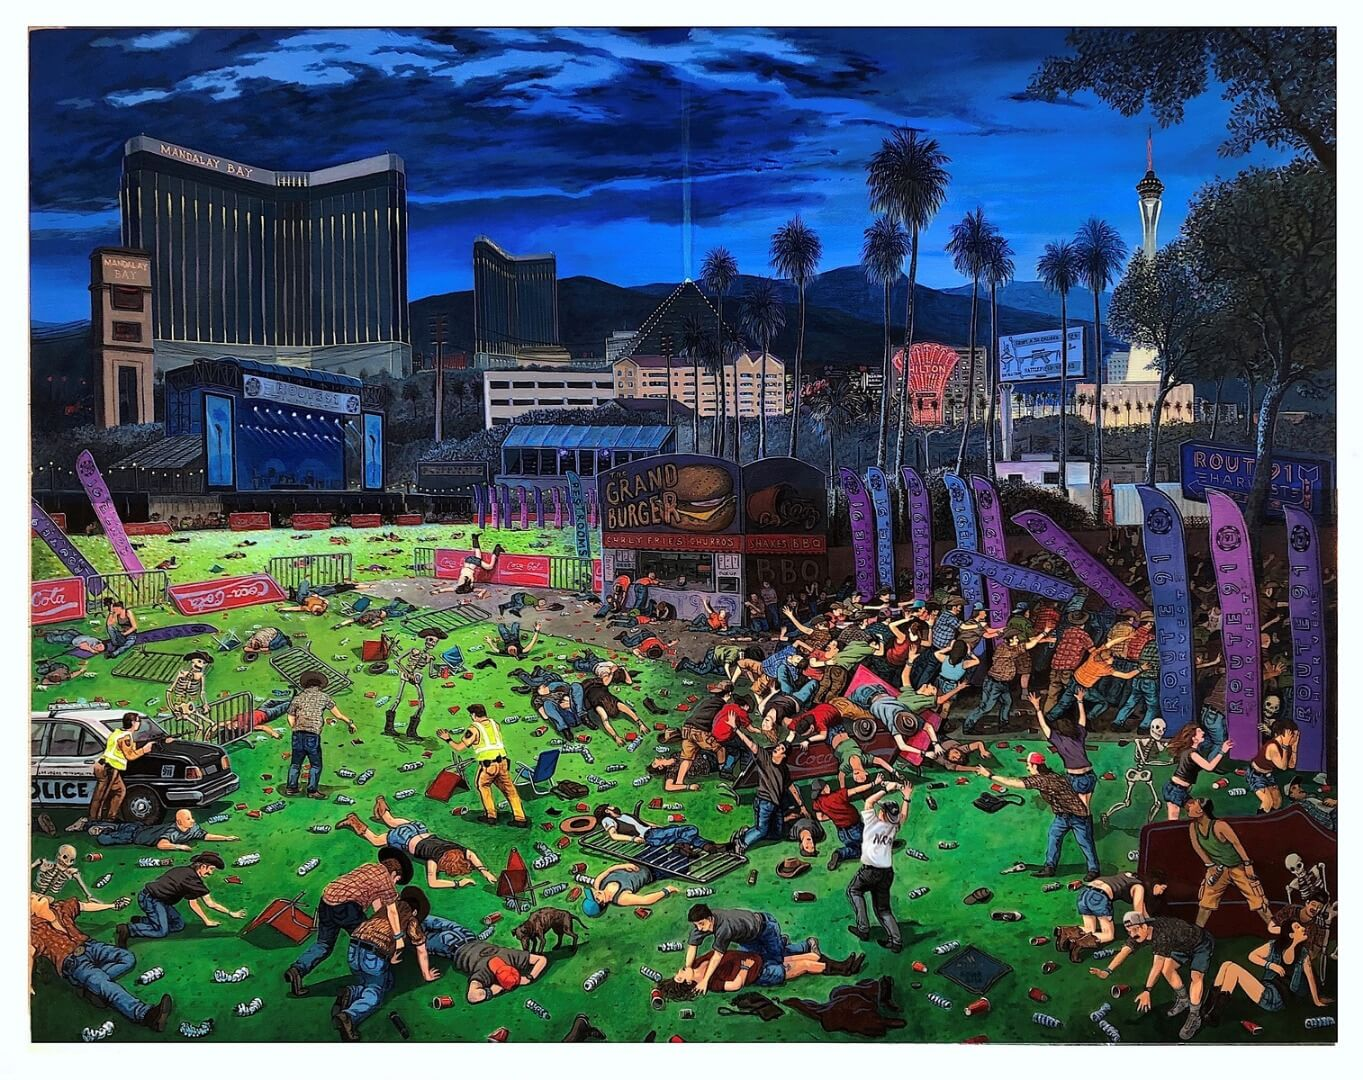 2018_The Triumph of Death (Las Vegas)_45x58